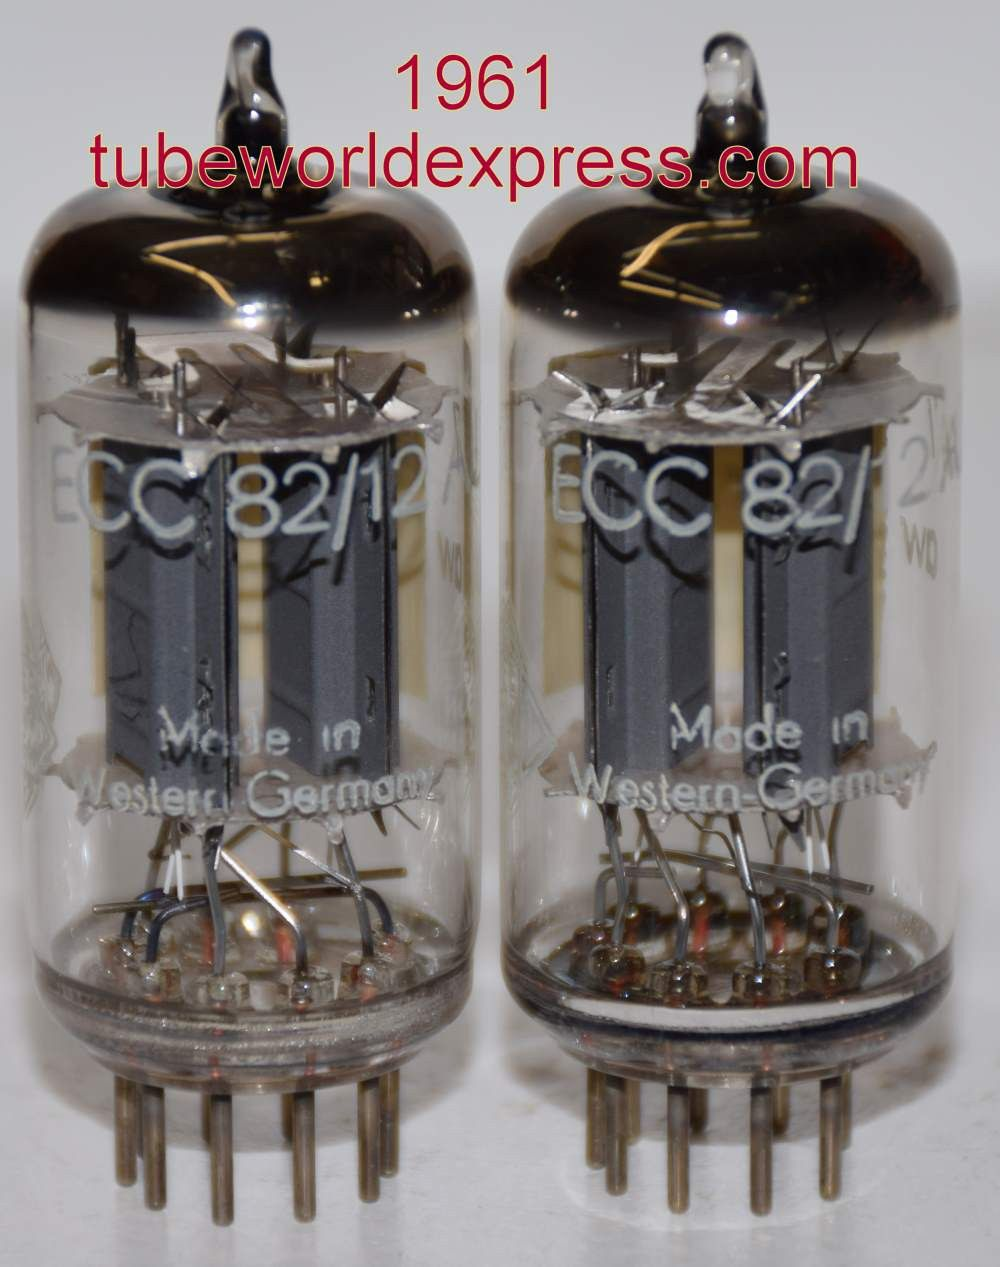 Recommended Pair 1950 S Ecc82 12au7 Telefunken Diamond Bottom Ribbed Plates Used Good 1950 S 9 5 9 8ma And 9 2 9 8ma 1 3 Matched Recommended Pair Vacuum Tube Vintage Valve Vintage Electronics